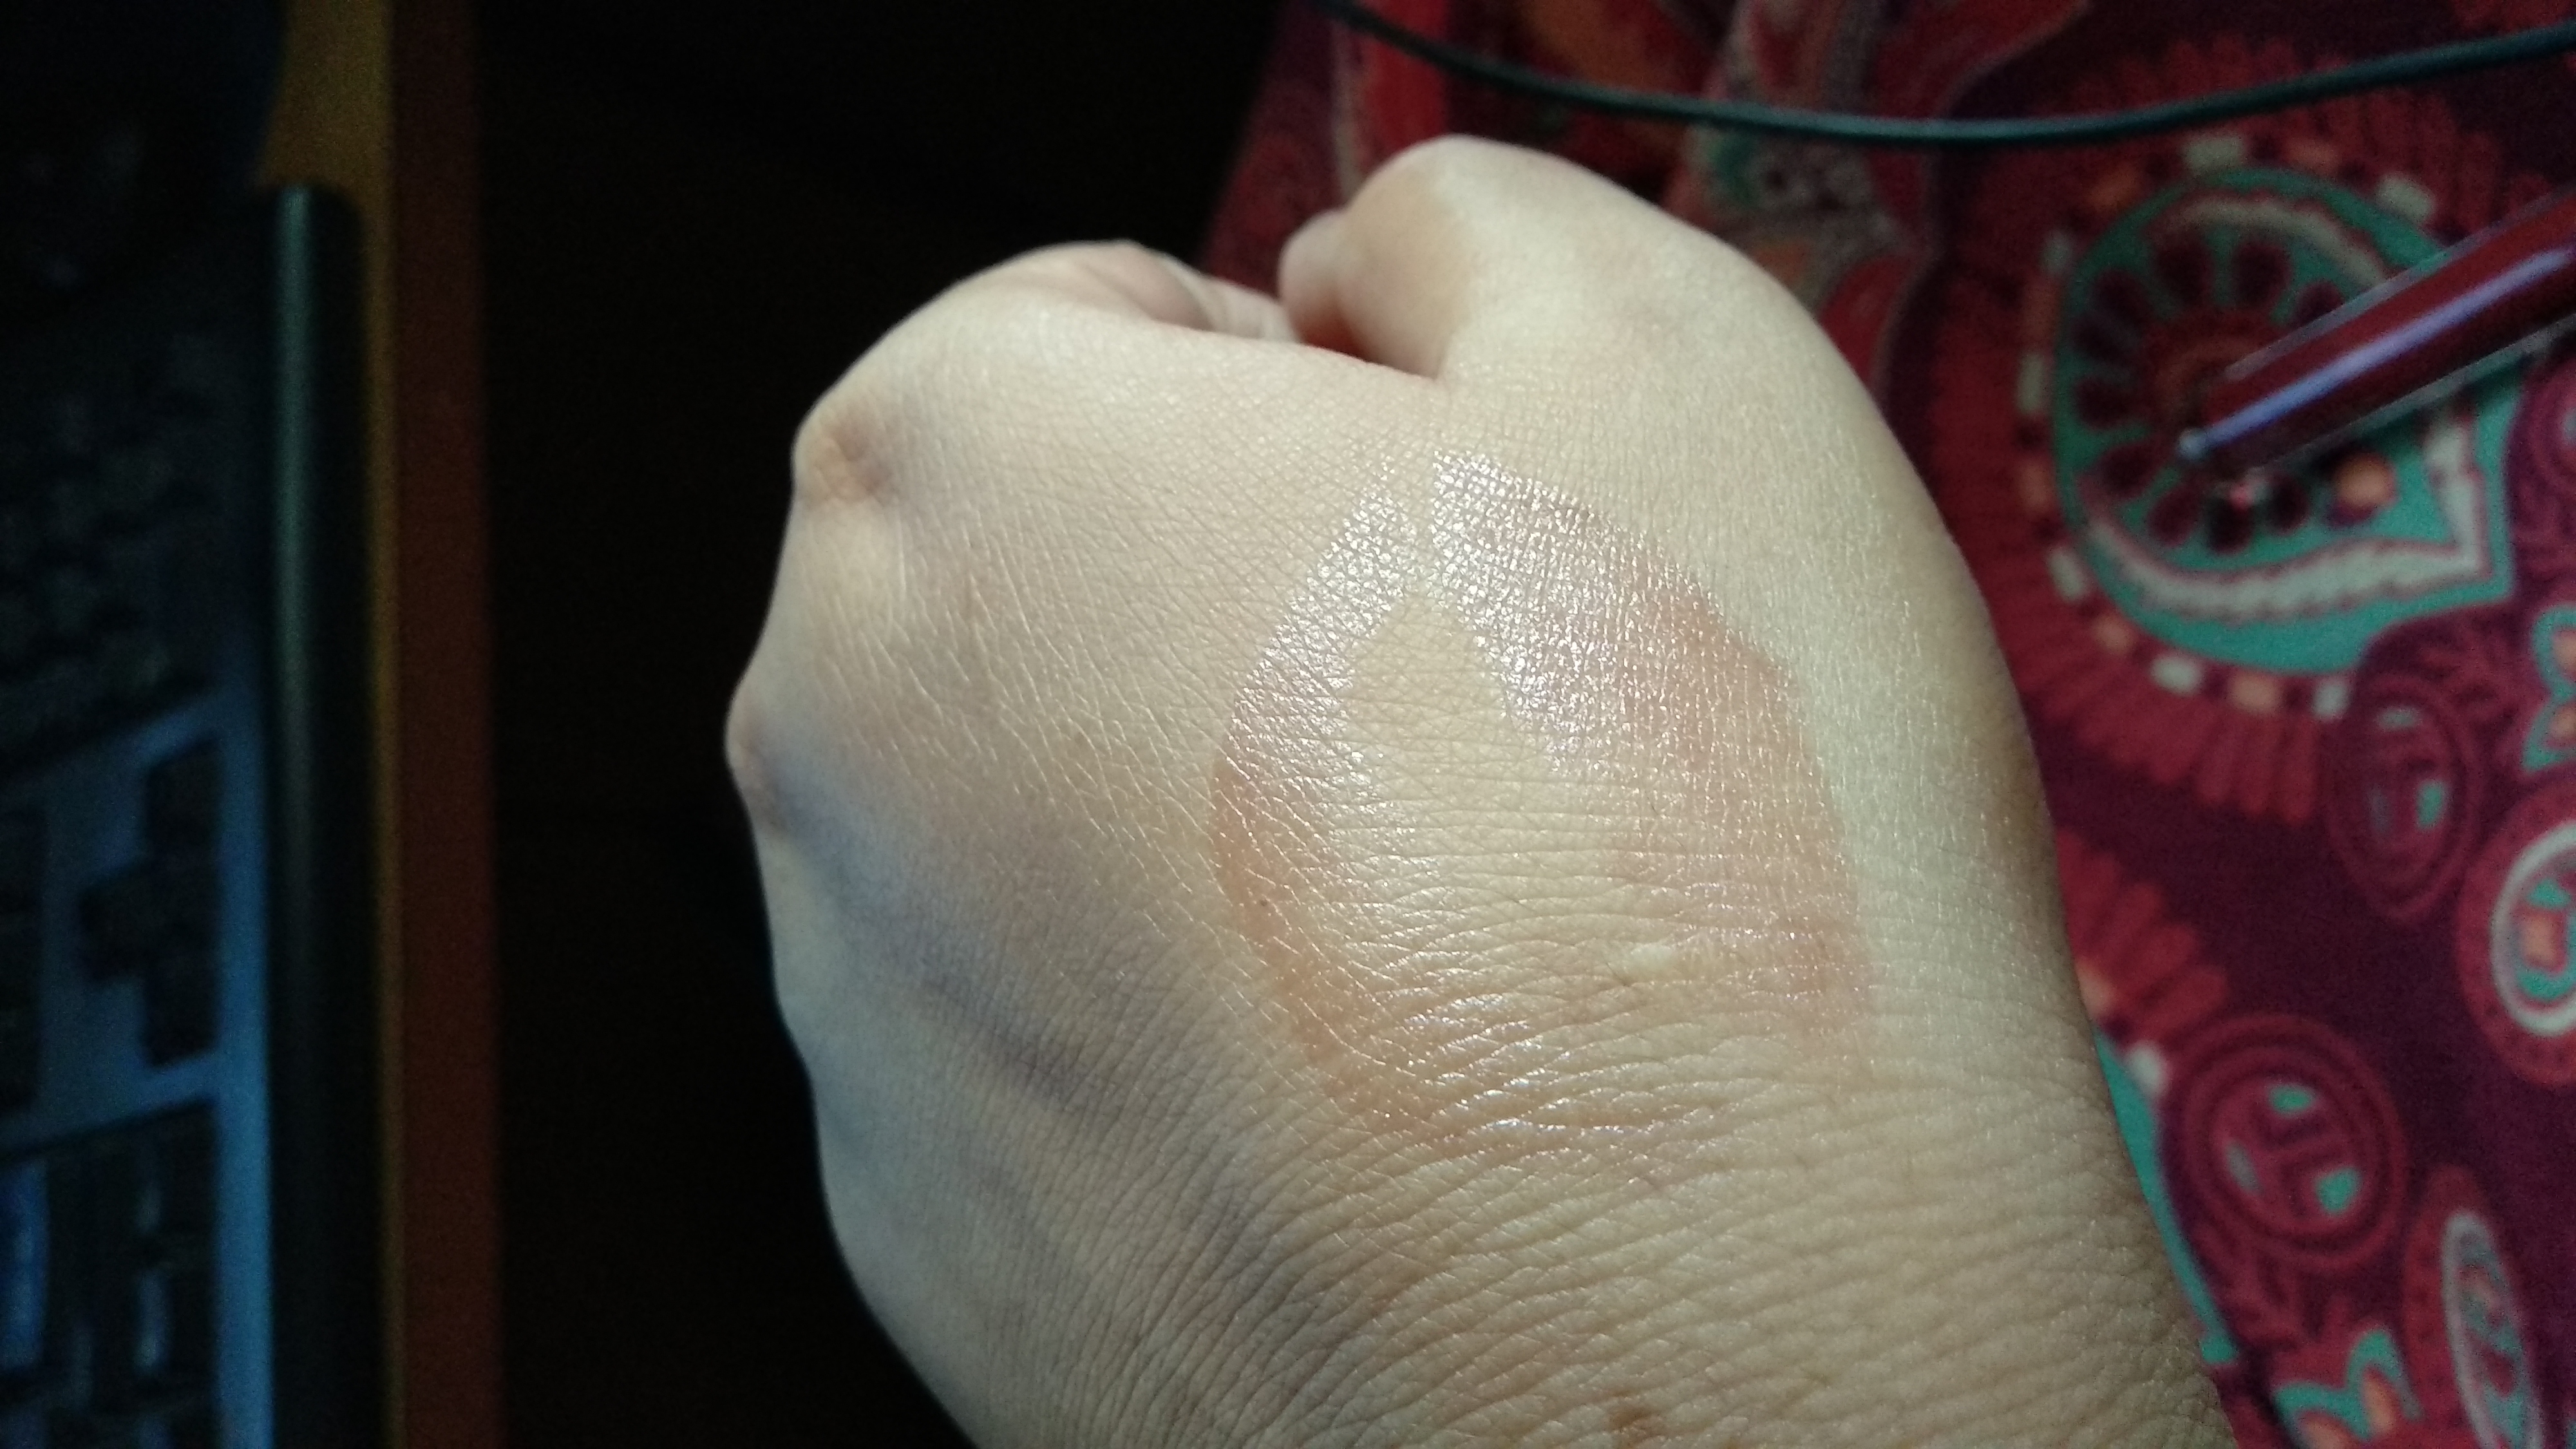 Lakme Absolute Plump And Shine Lip Gloss-my first ever lip gloss i bought-By tarjani@tj-2